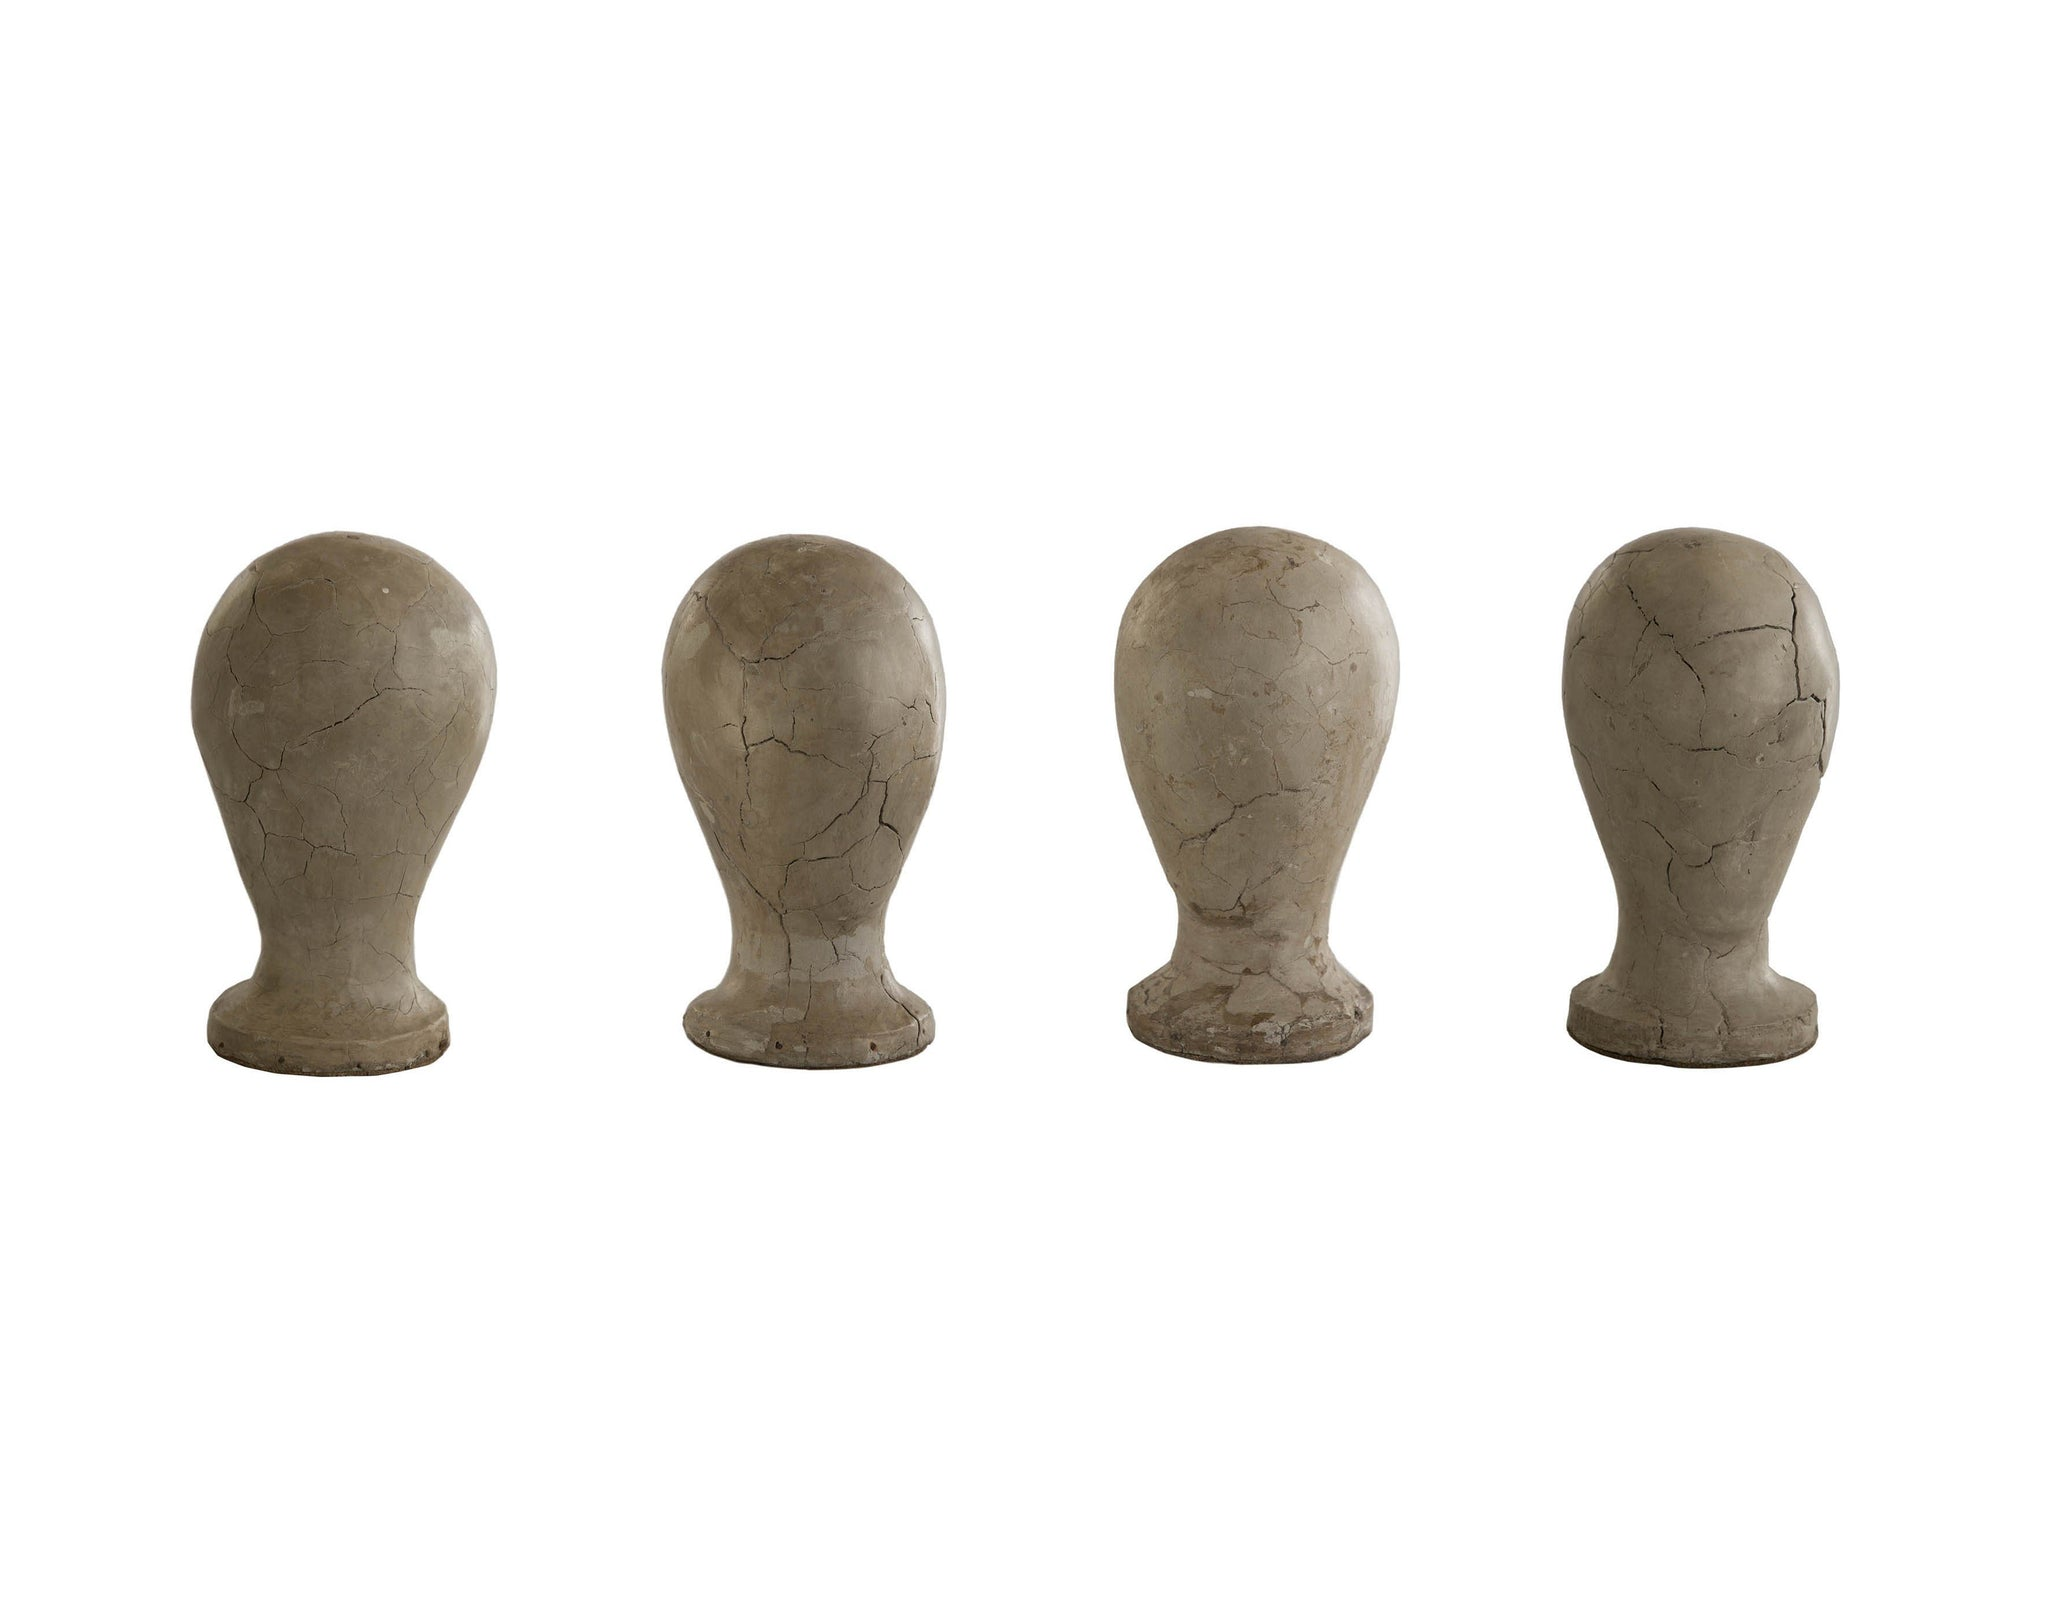 Clay Milliners Heads